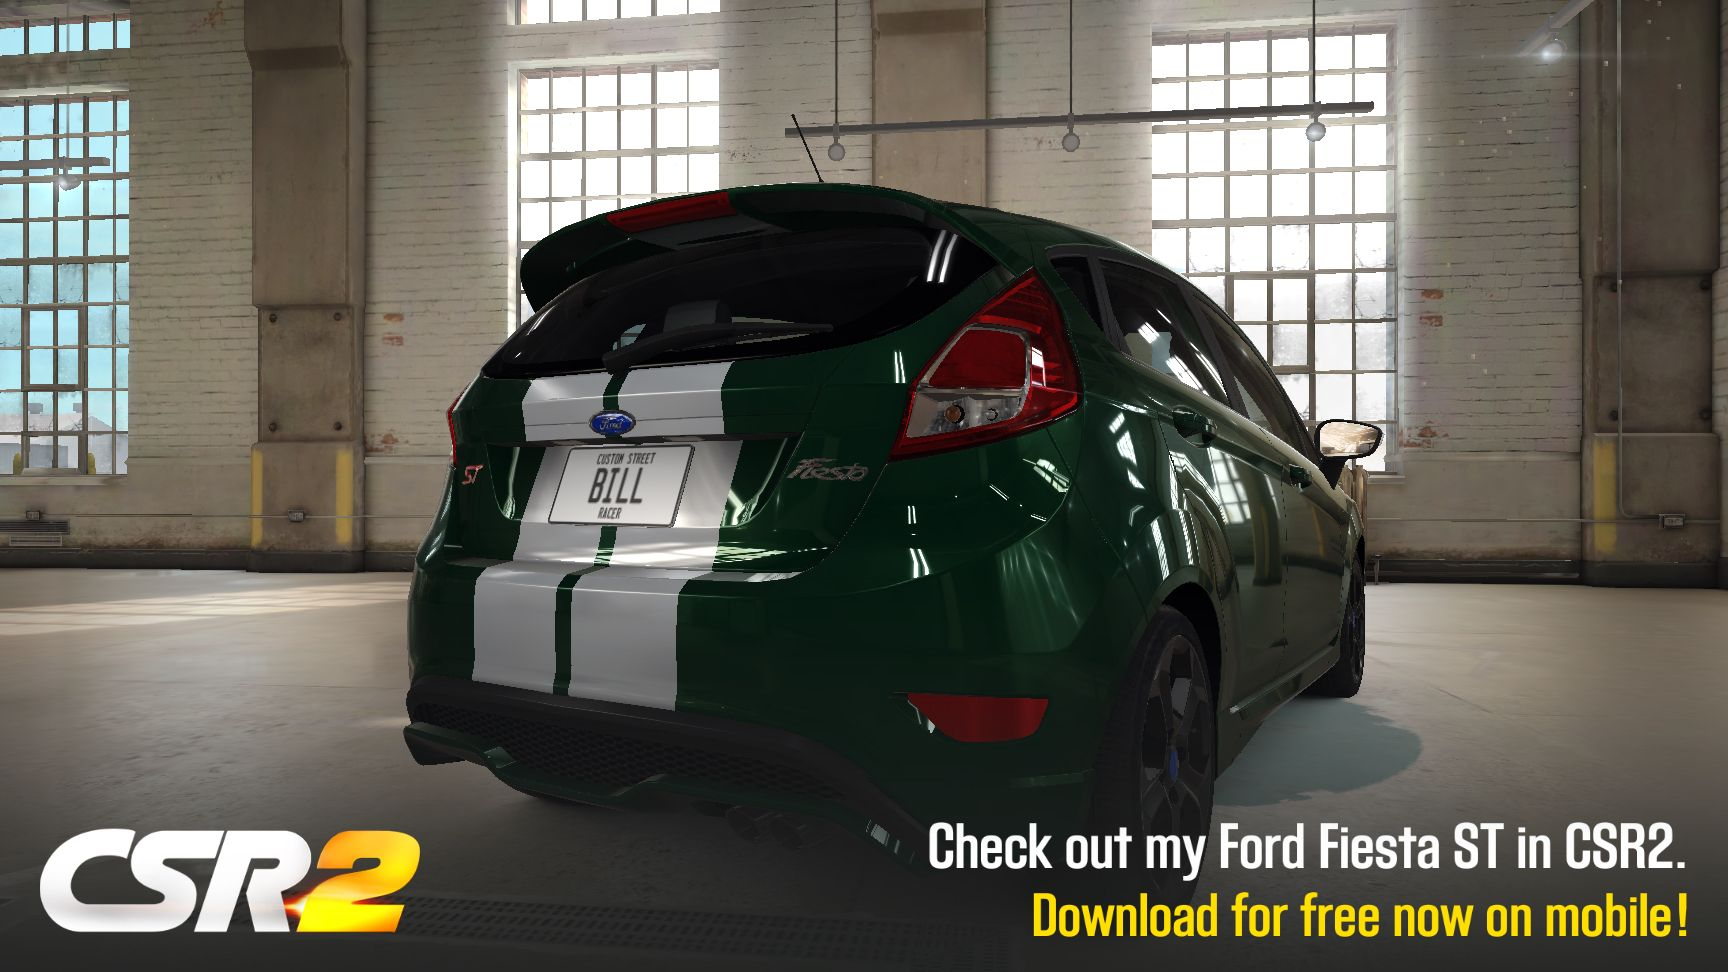 Ford Fiesta St Csr Racing 2 I D Prefer Dark Green Wheels Stripes On A White Car But This Is Close Enough Ford Fiesta St Fiesta St Ford Fiesta